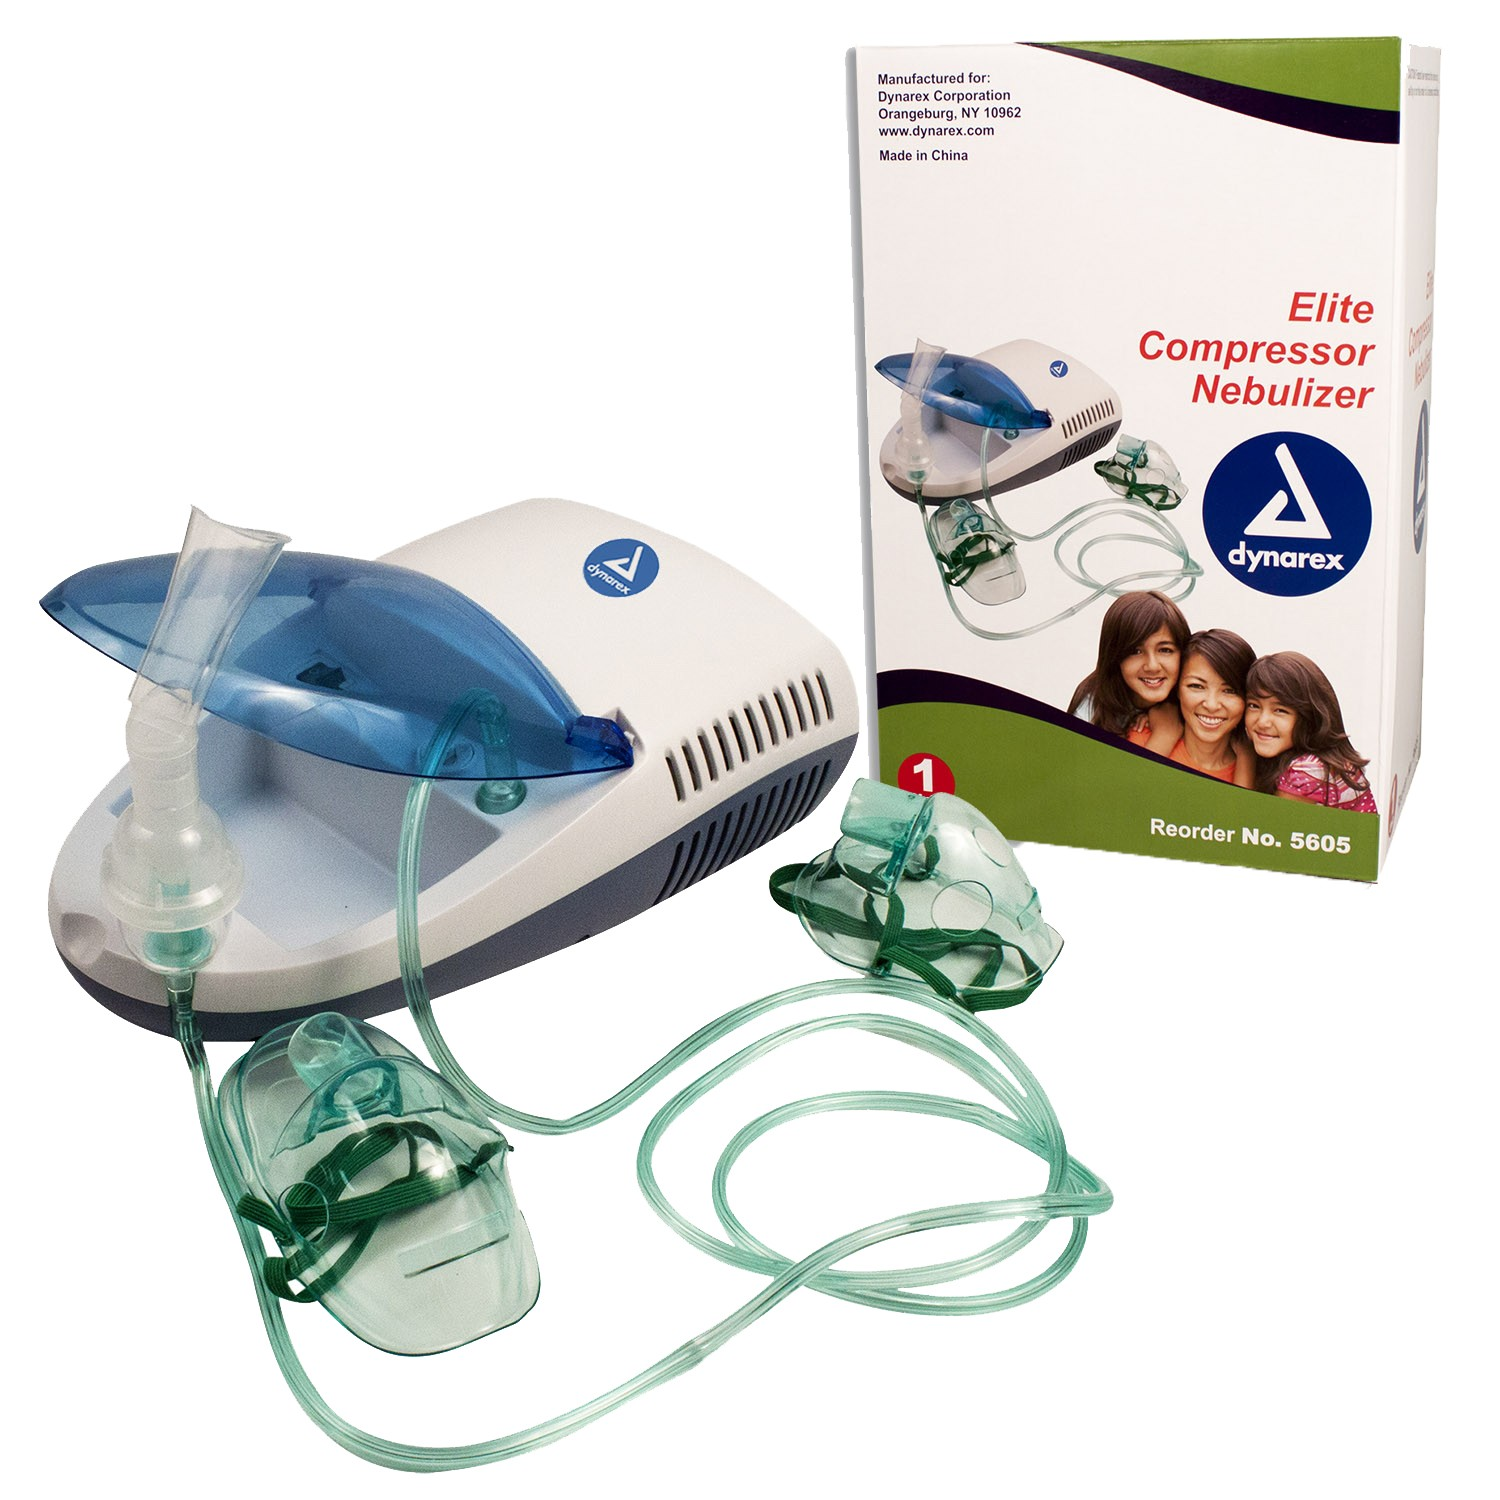 Elite Compressor Nebulizer